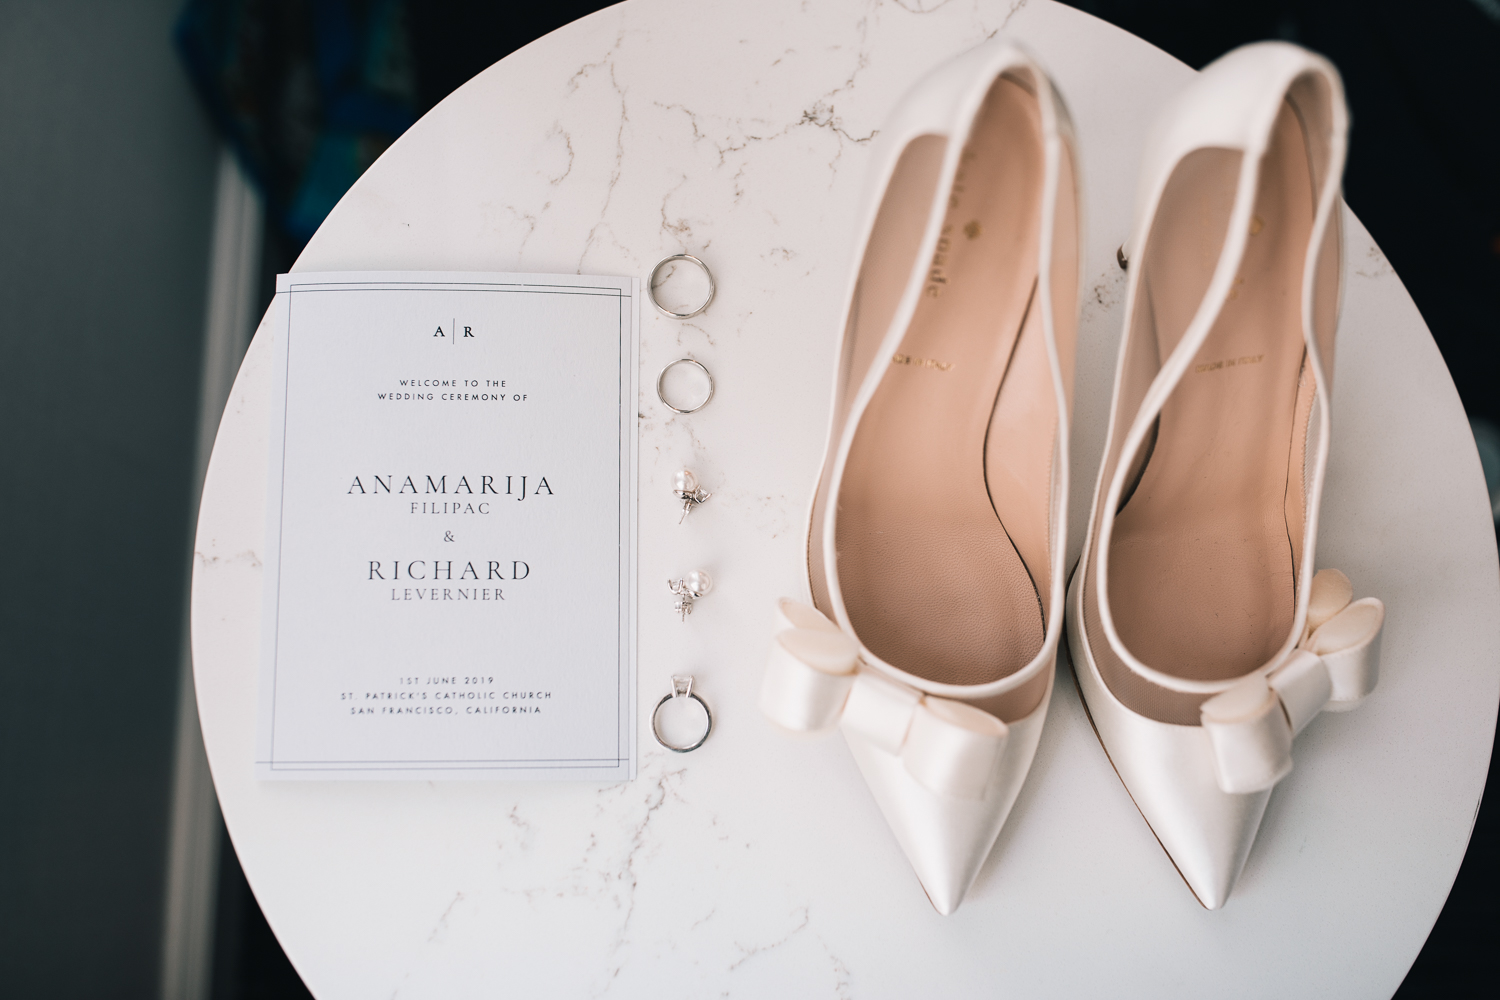 2019.06.01 Ana + Richard SF Wedding Blog Photos -6386.jpg